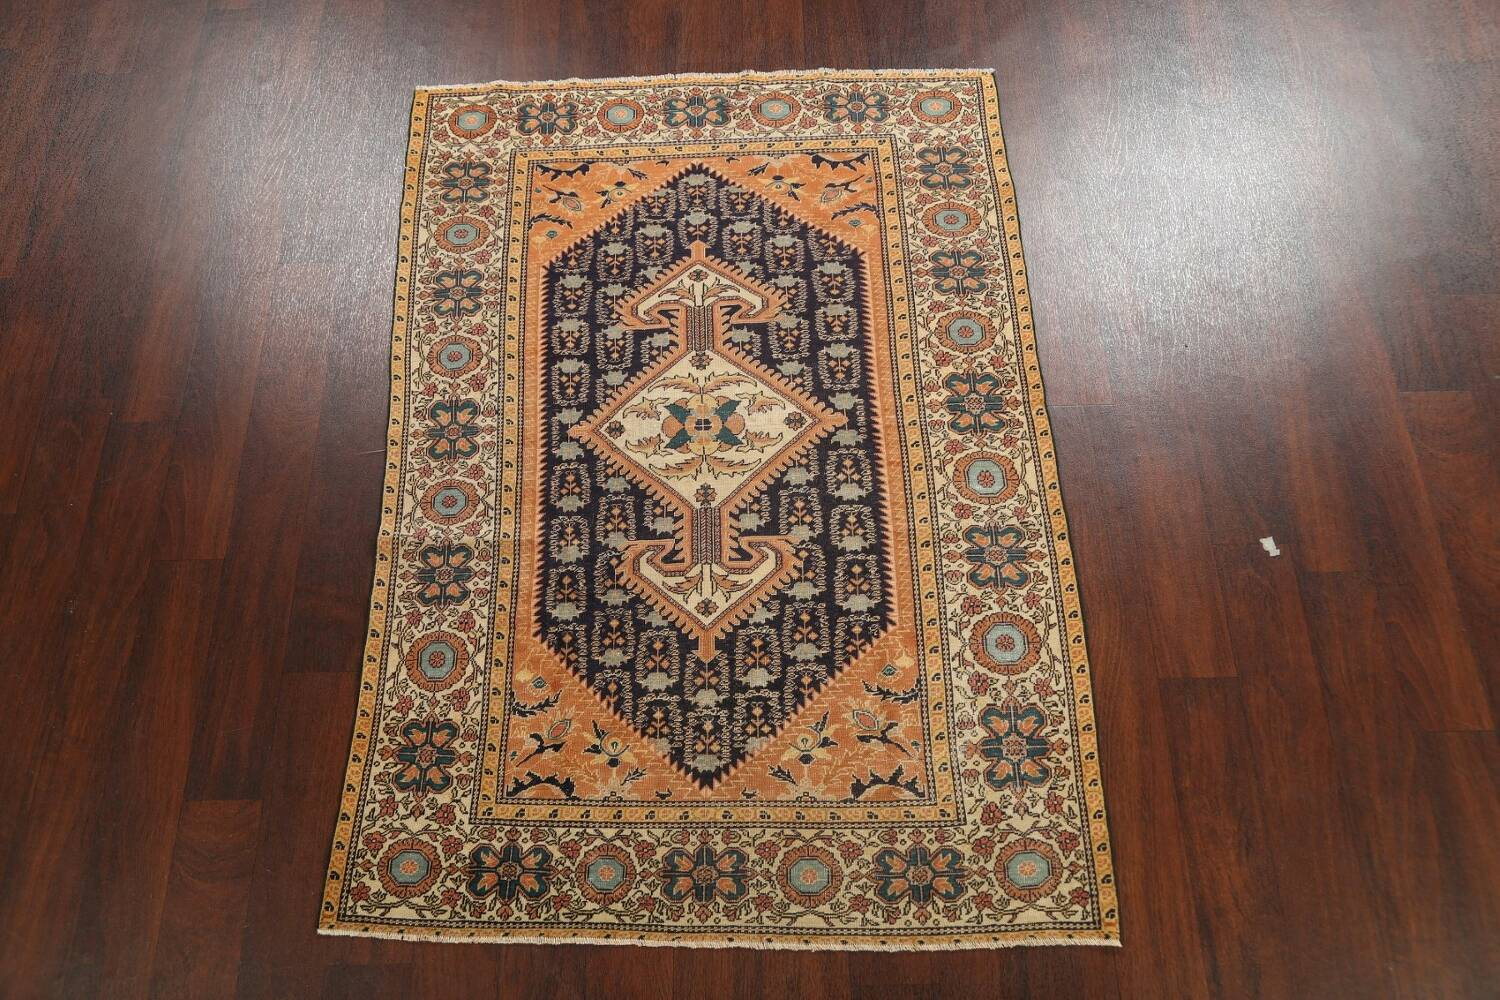 Antique 100% Vegetable Dye Sultanabad Persian Area Rug 4x5 image 2